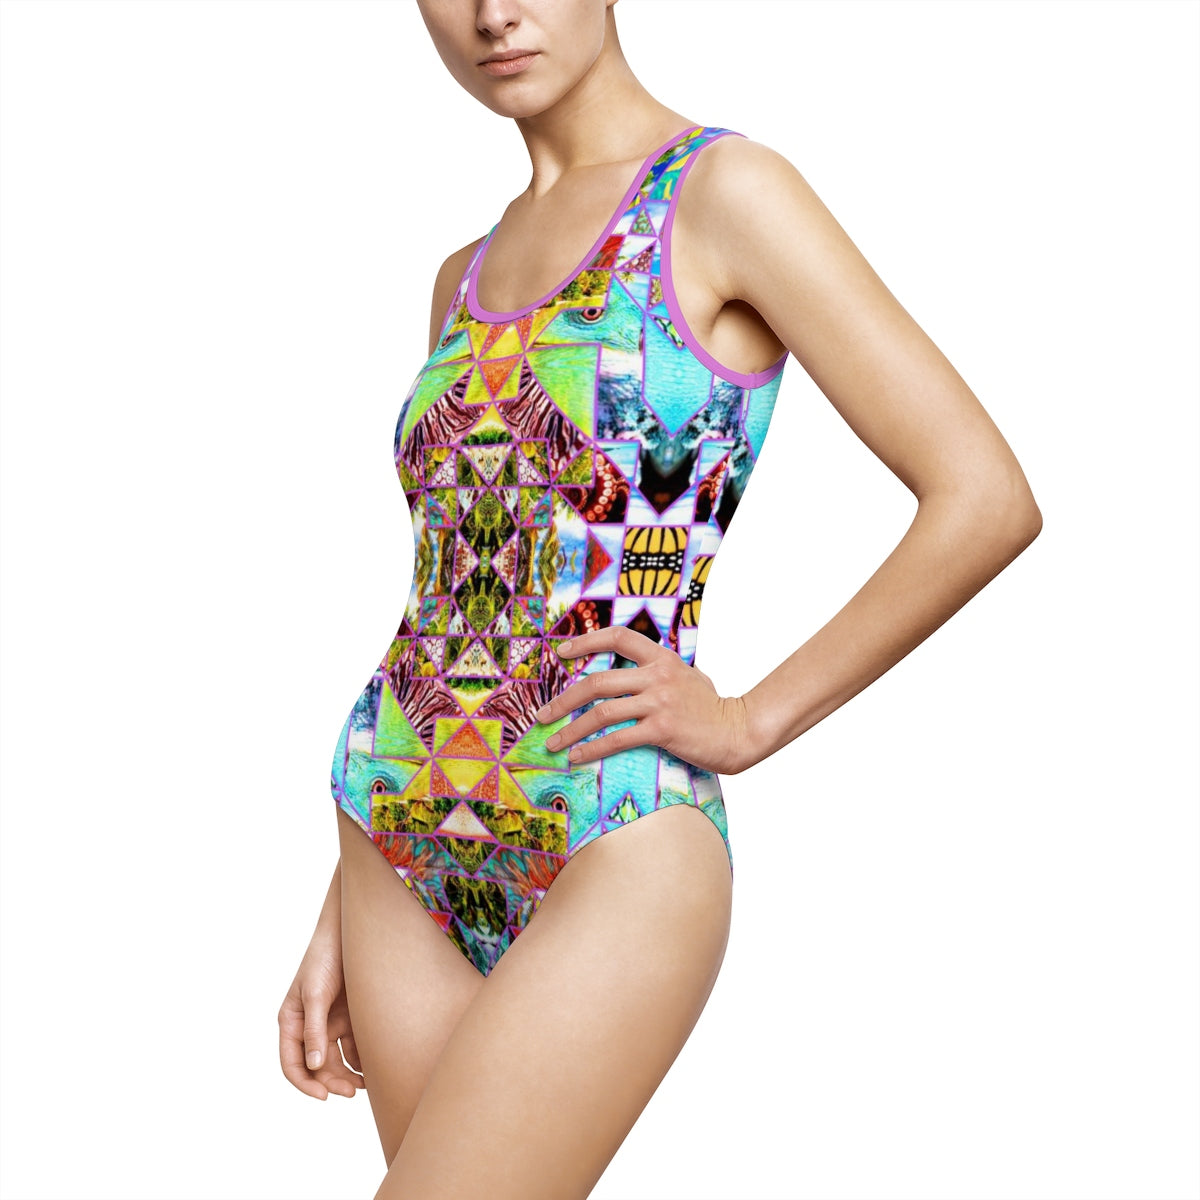 Fiji Islands #0002 (One Piece Swimwear)